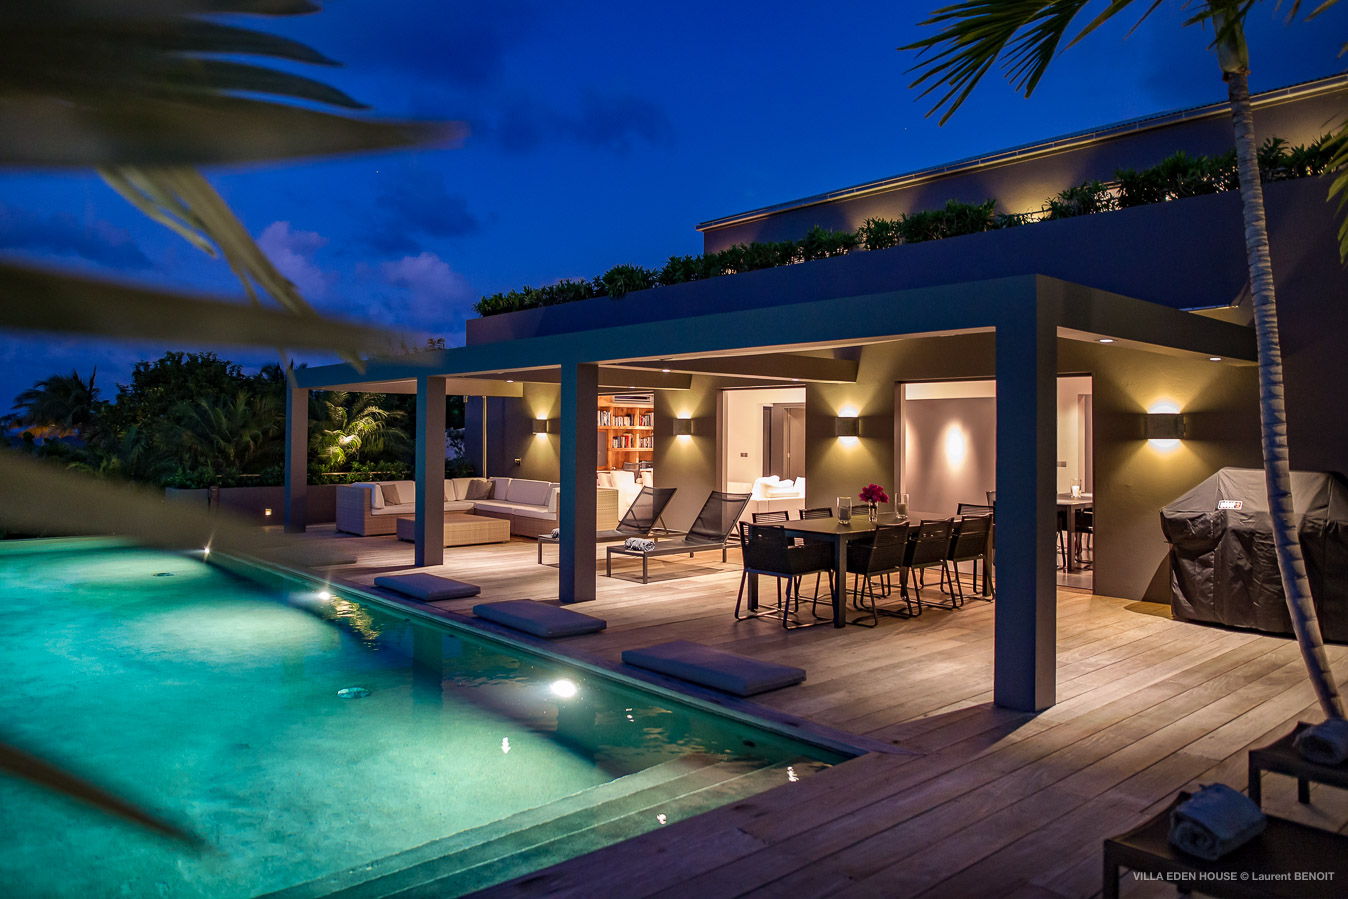 Villa Eden House - Fresh and Modern Property for Rent for a Group Holiday in St Barth Marigot - Outside View